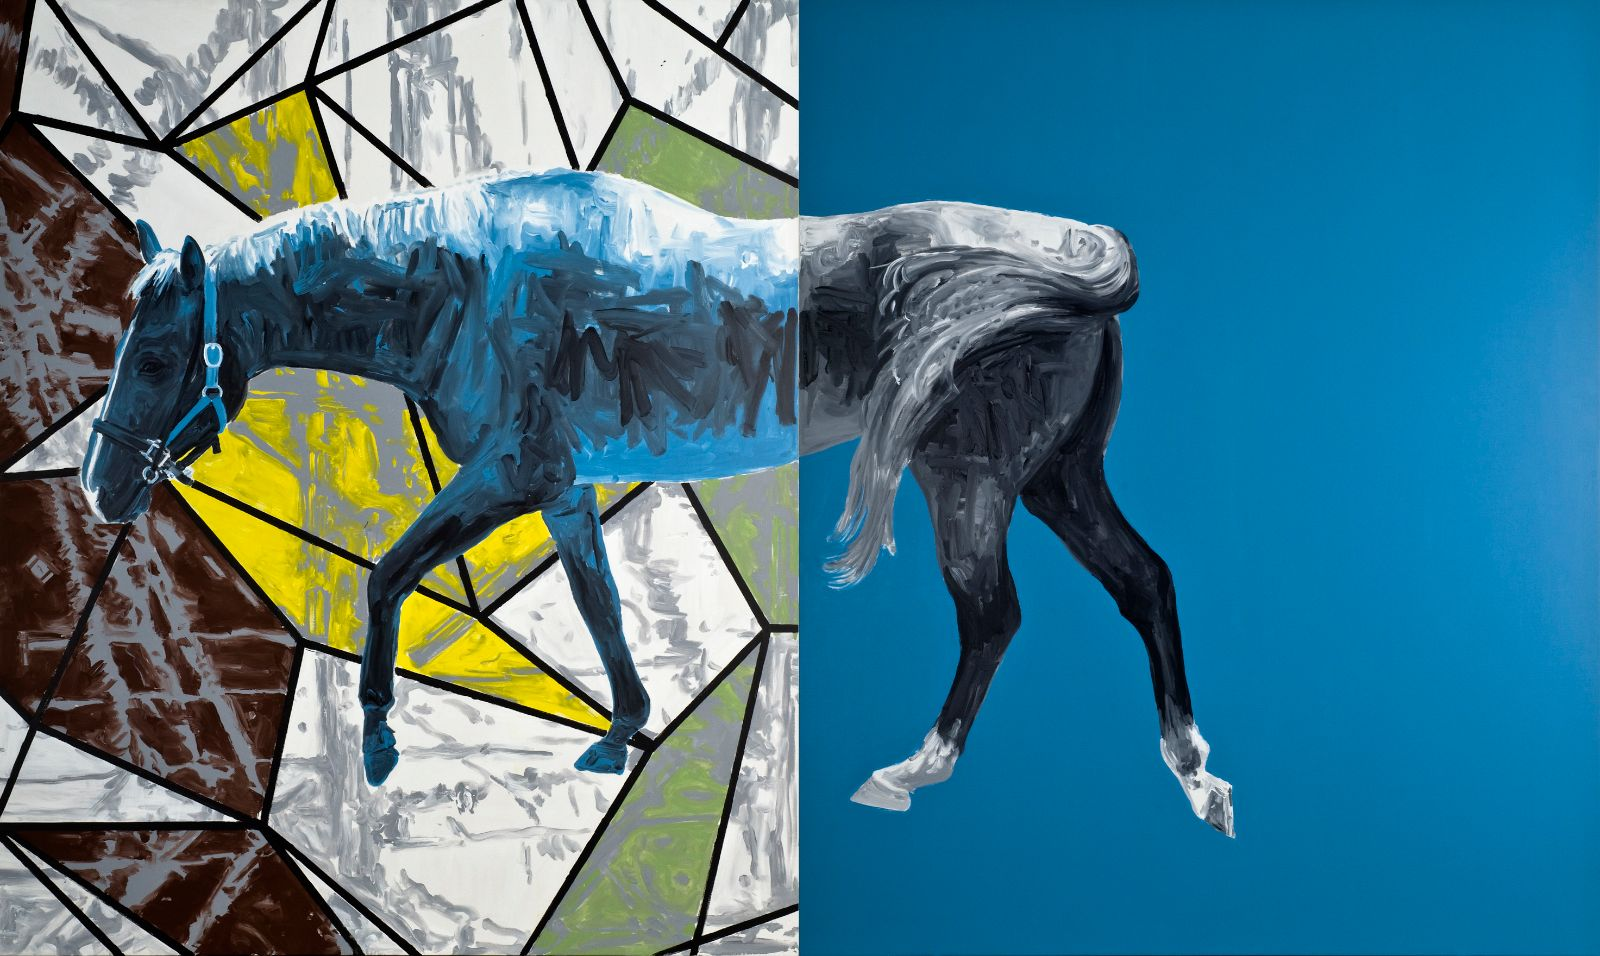 Untitled, 2008, acrylic on canvas, 240 x 400 cm